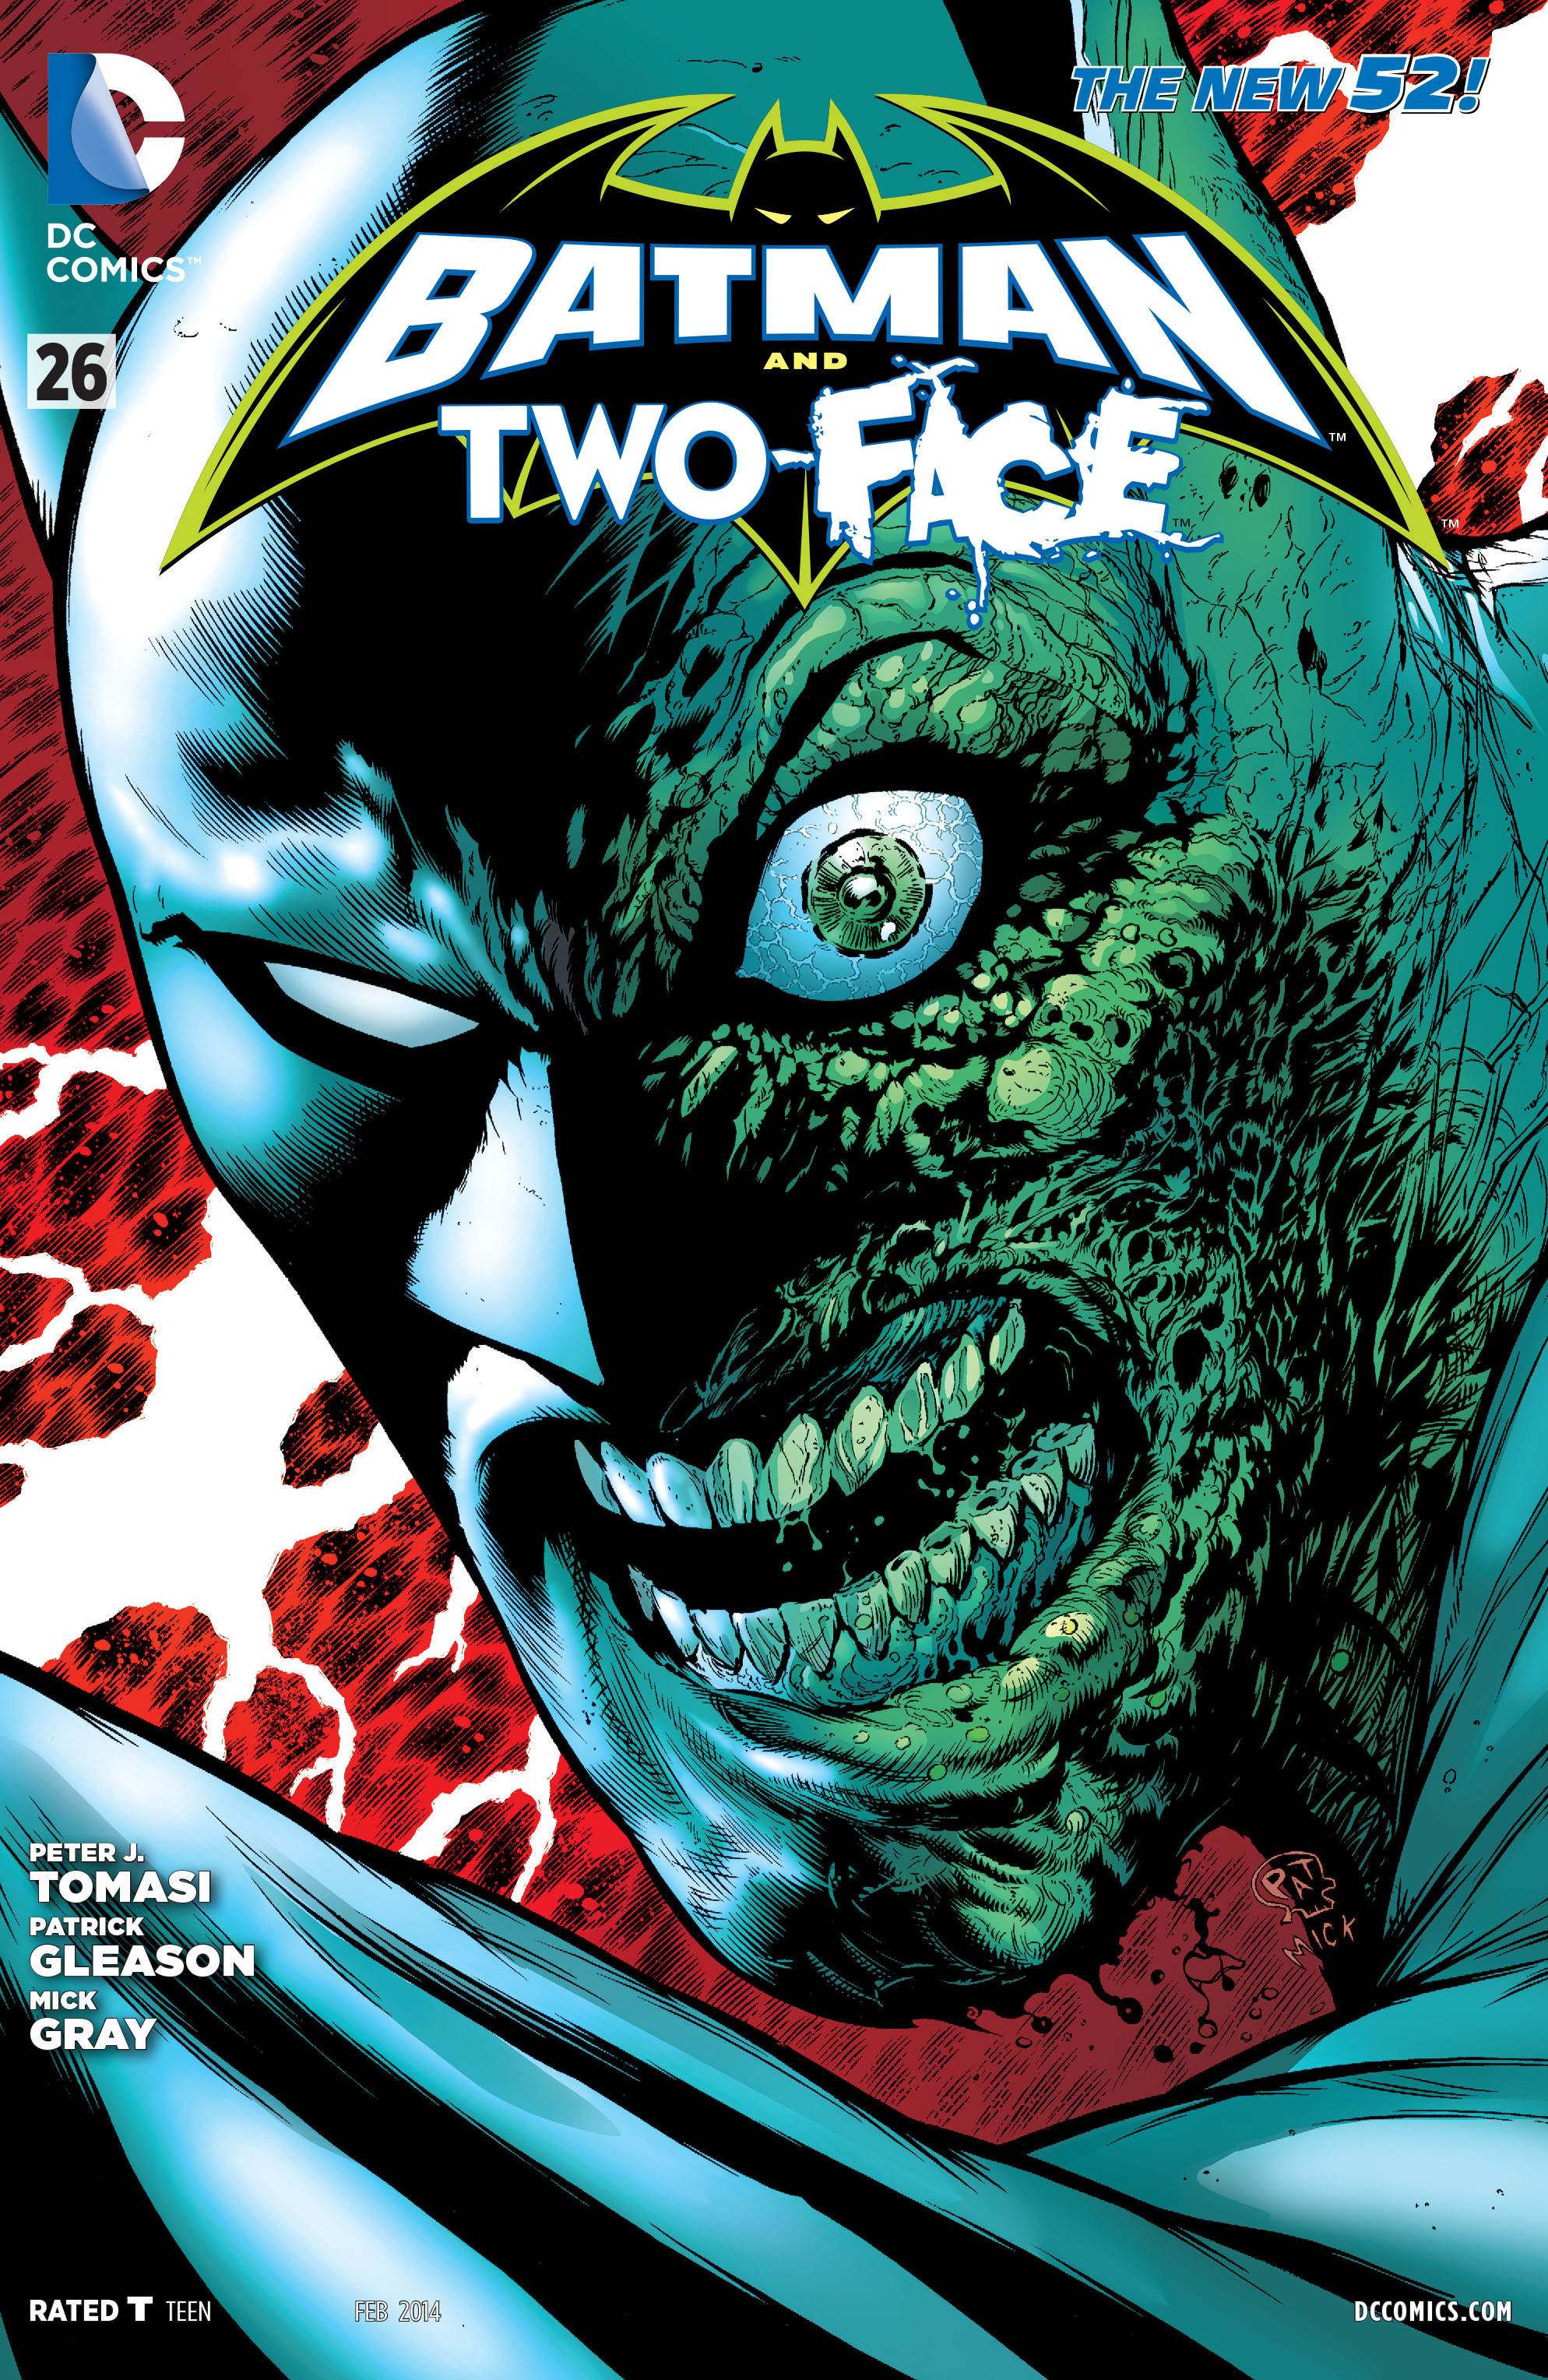 Read online Batman and Robin (2011) comic -  Issue #26 - Batman and Two-Face - 1